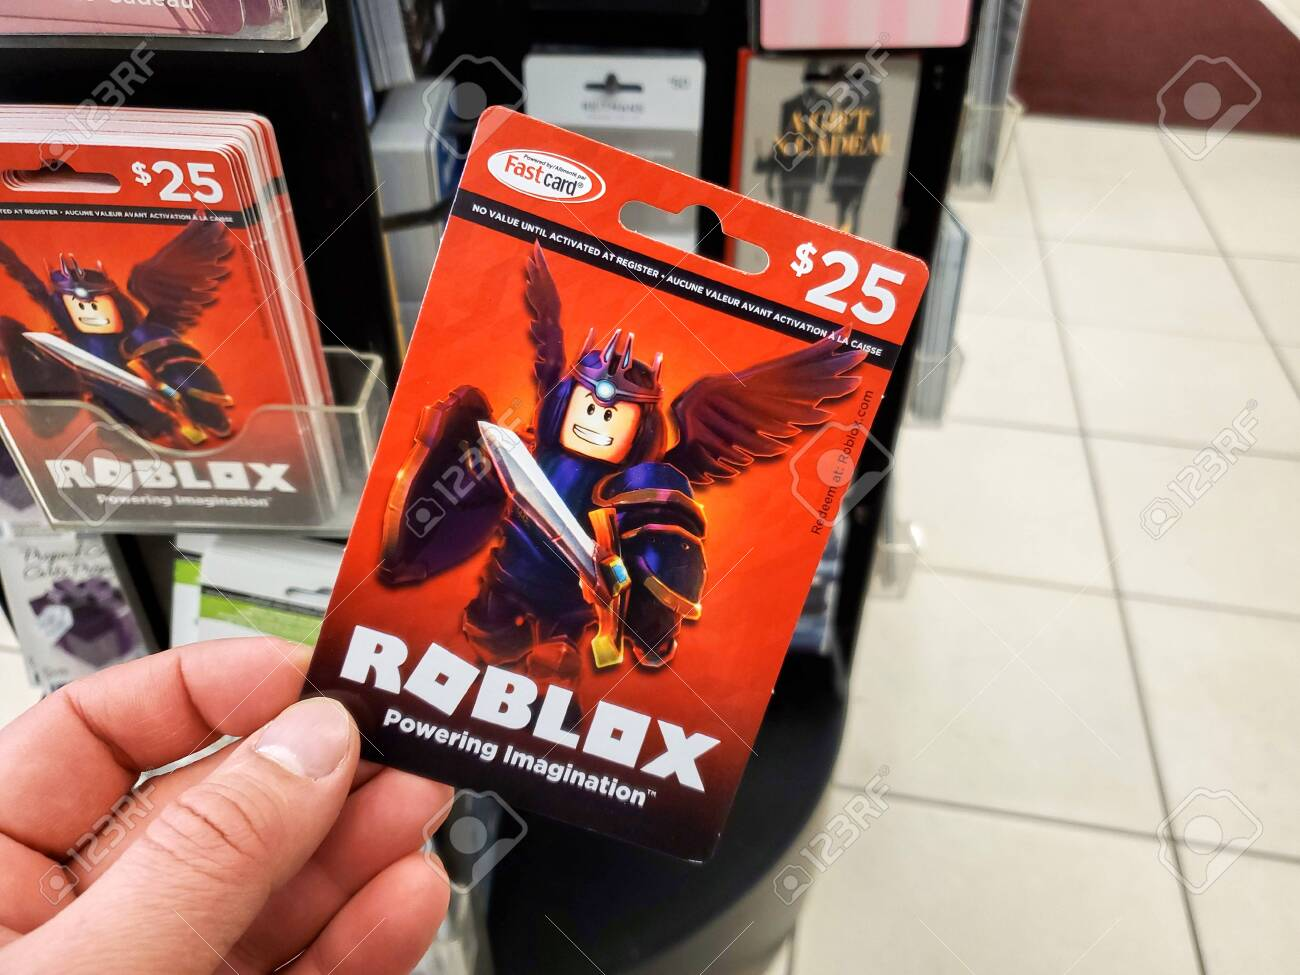 Montreal Canada March 22 2020 Roblox Gift Card In A Hand